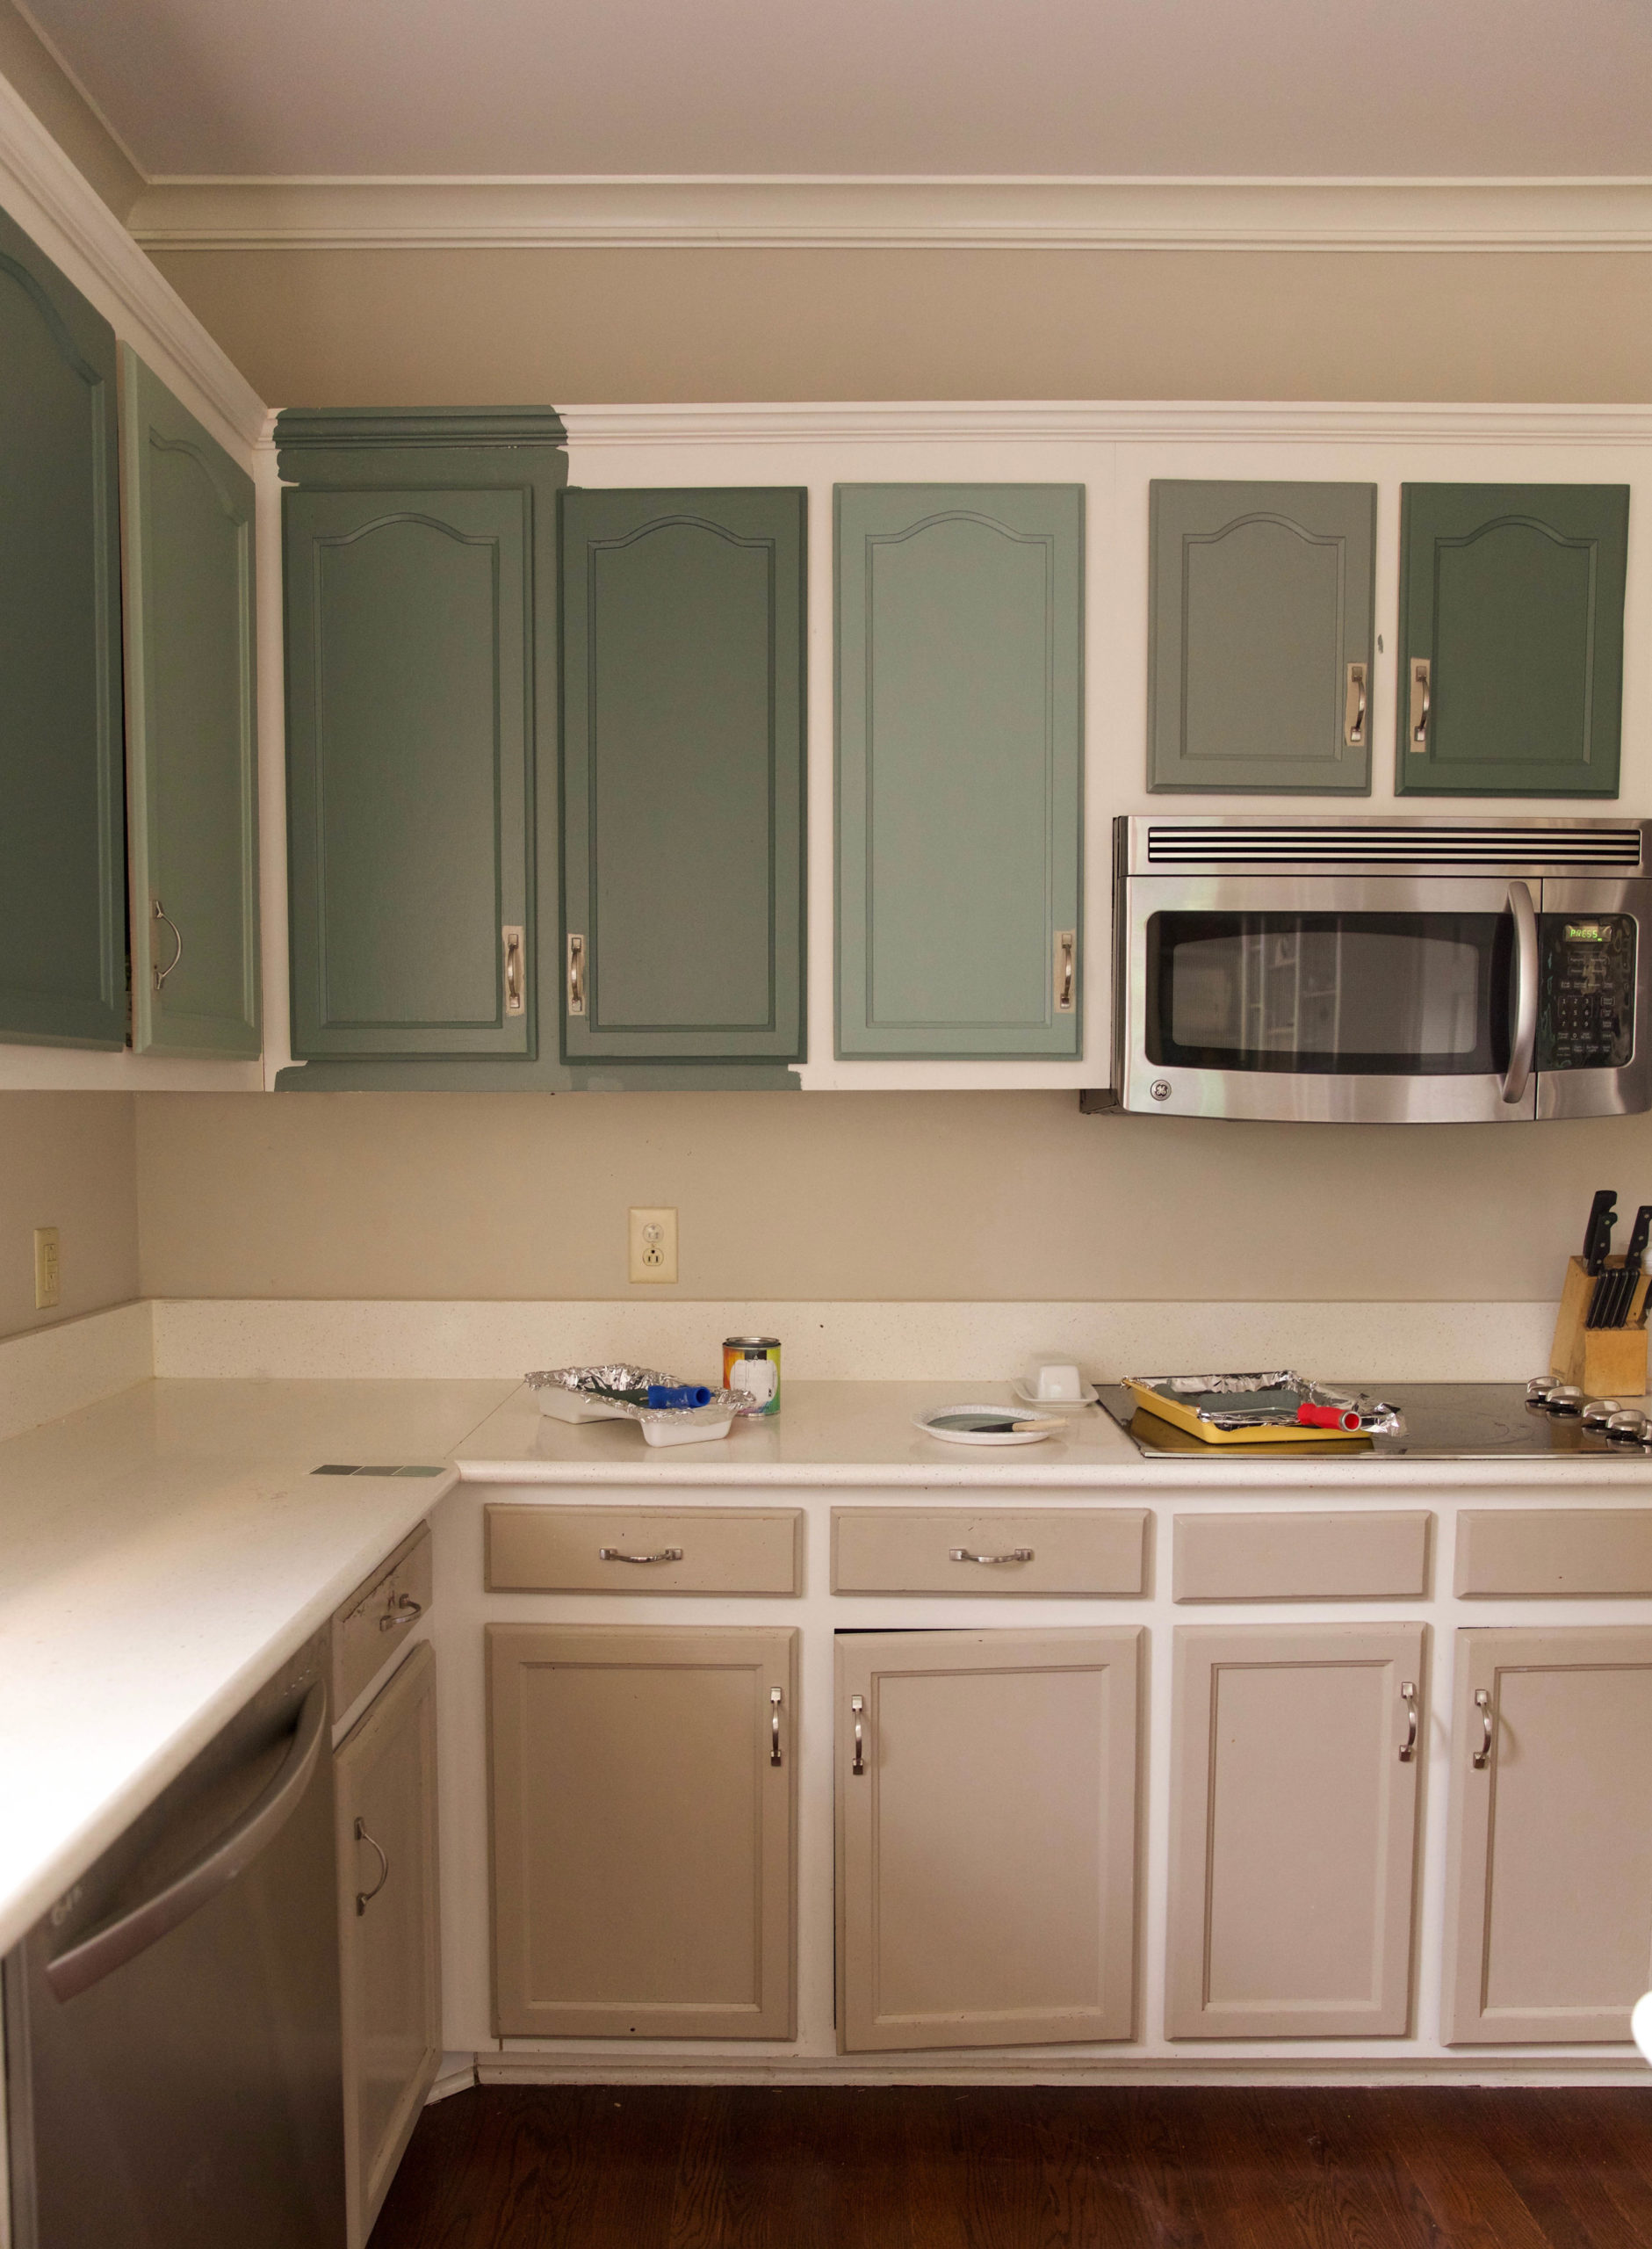 Green cabinet paint colors - IHOD